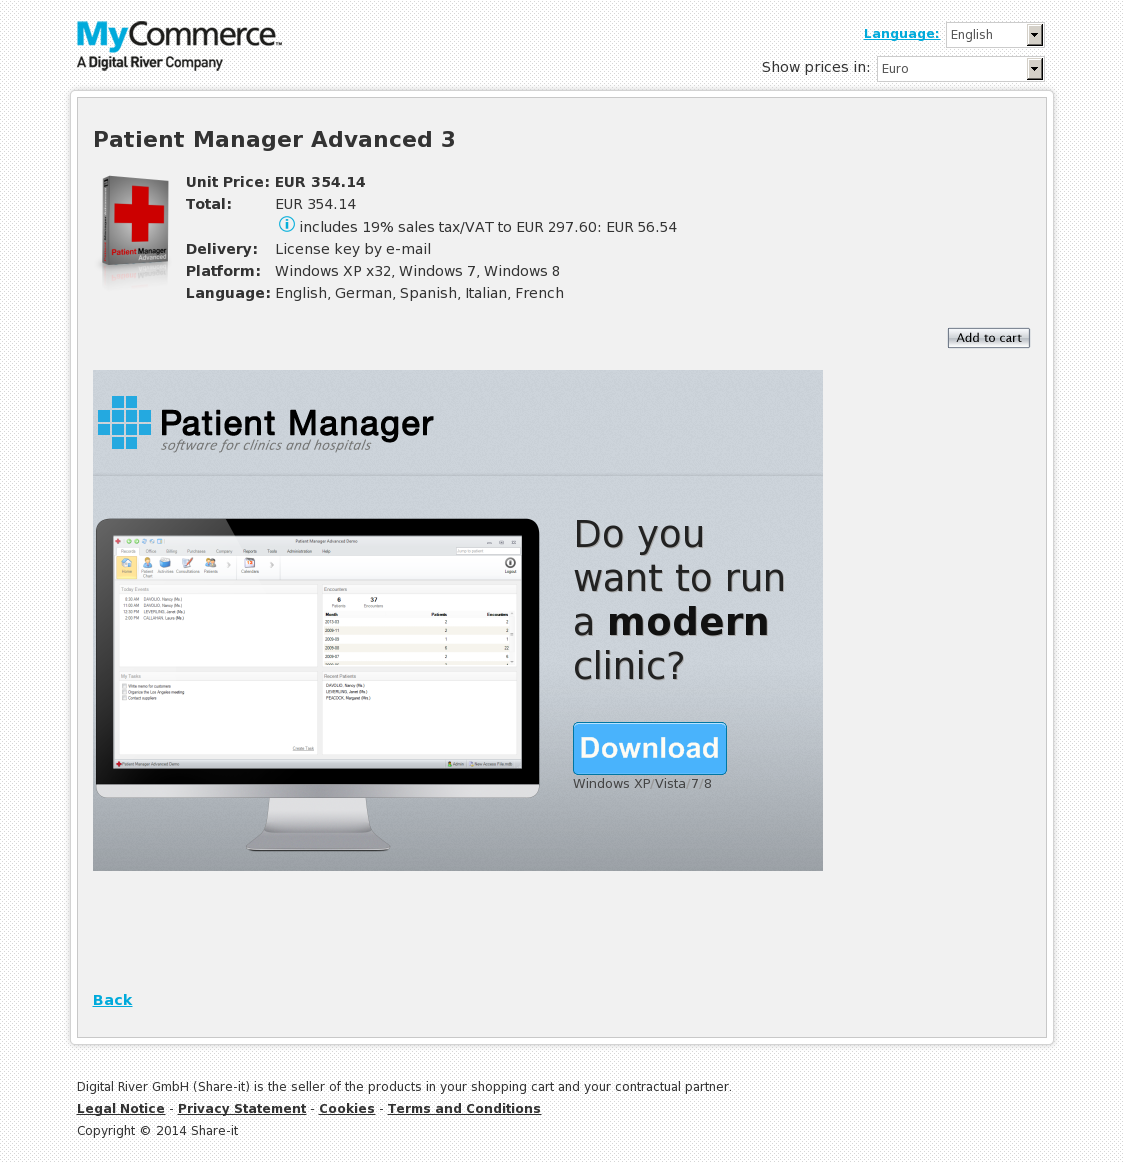 Patient Manager Advanced 3